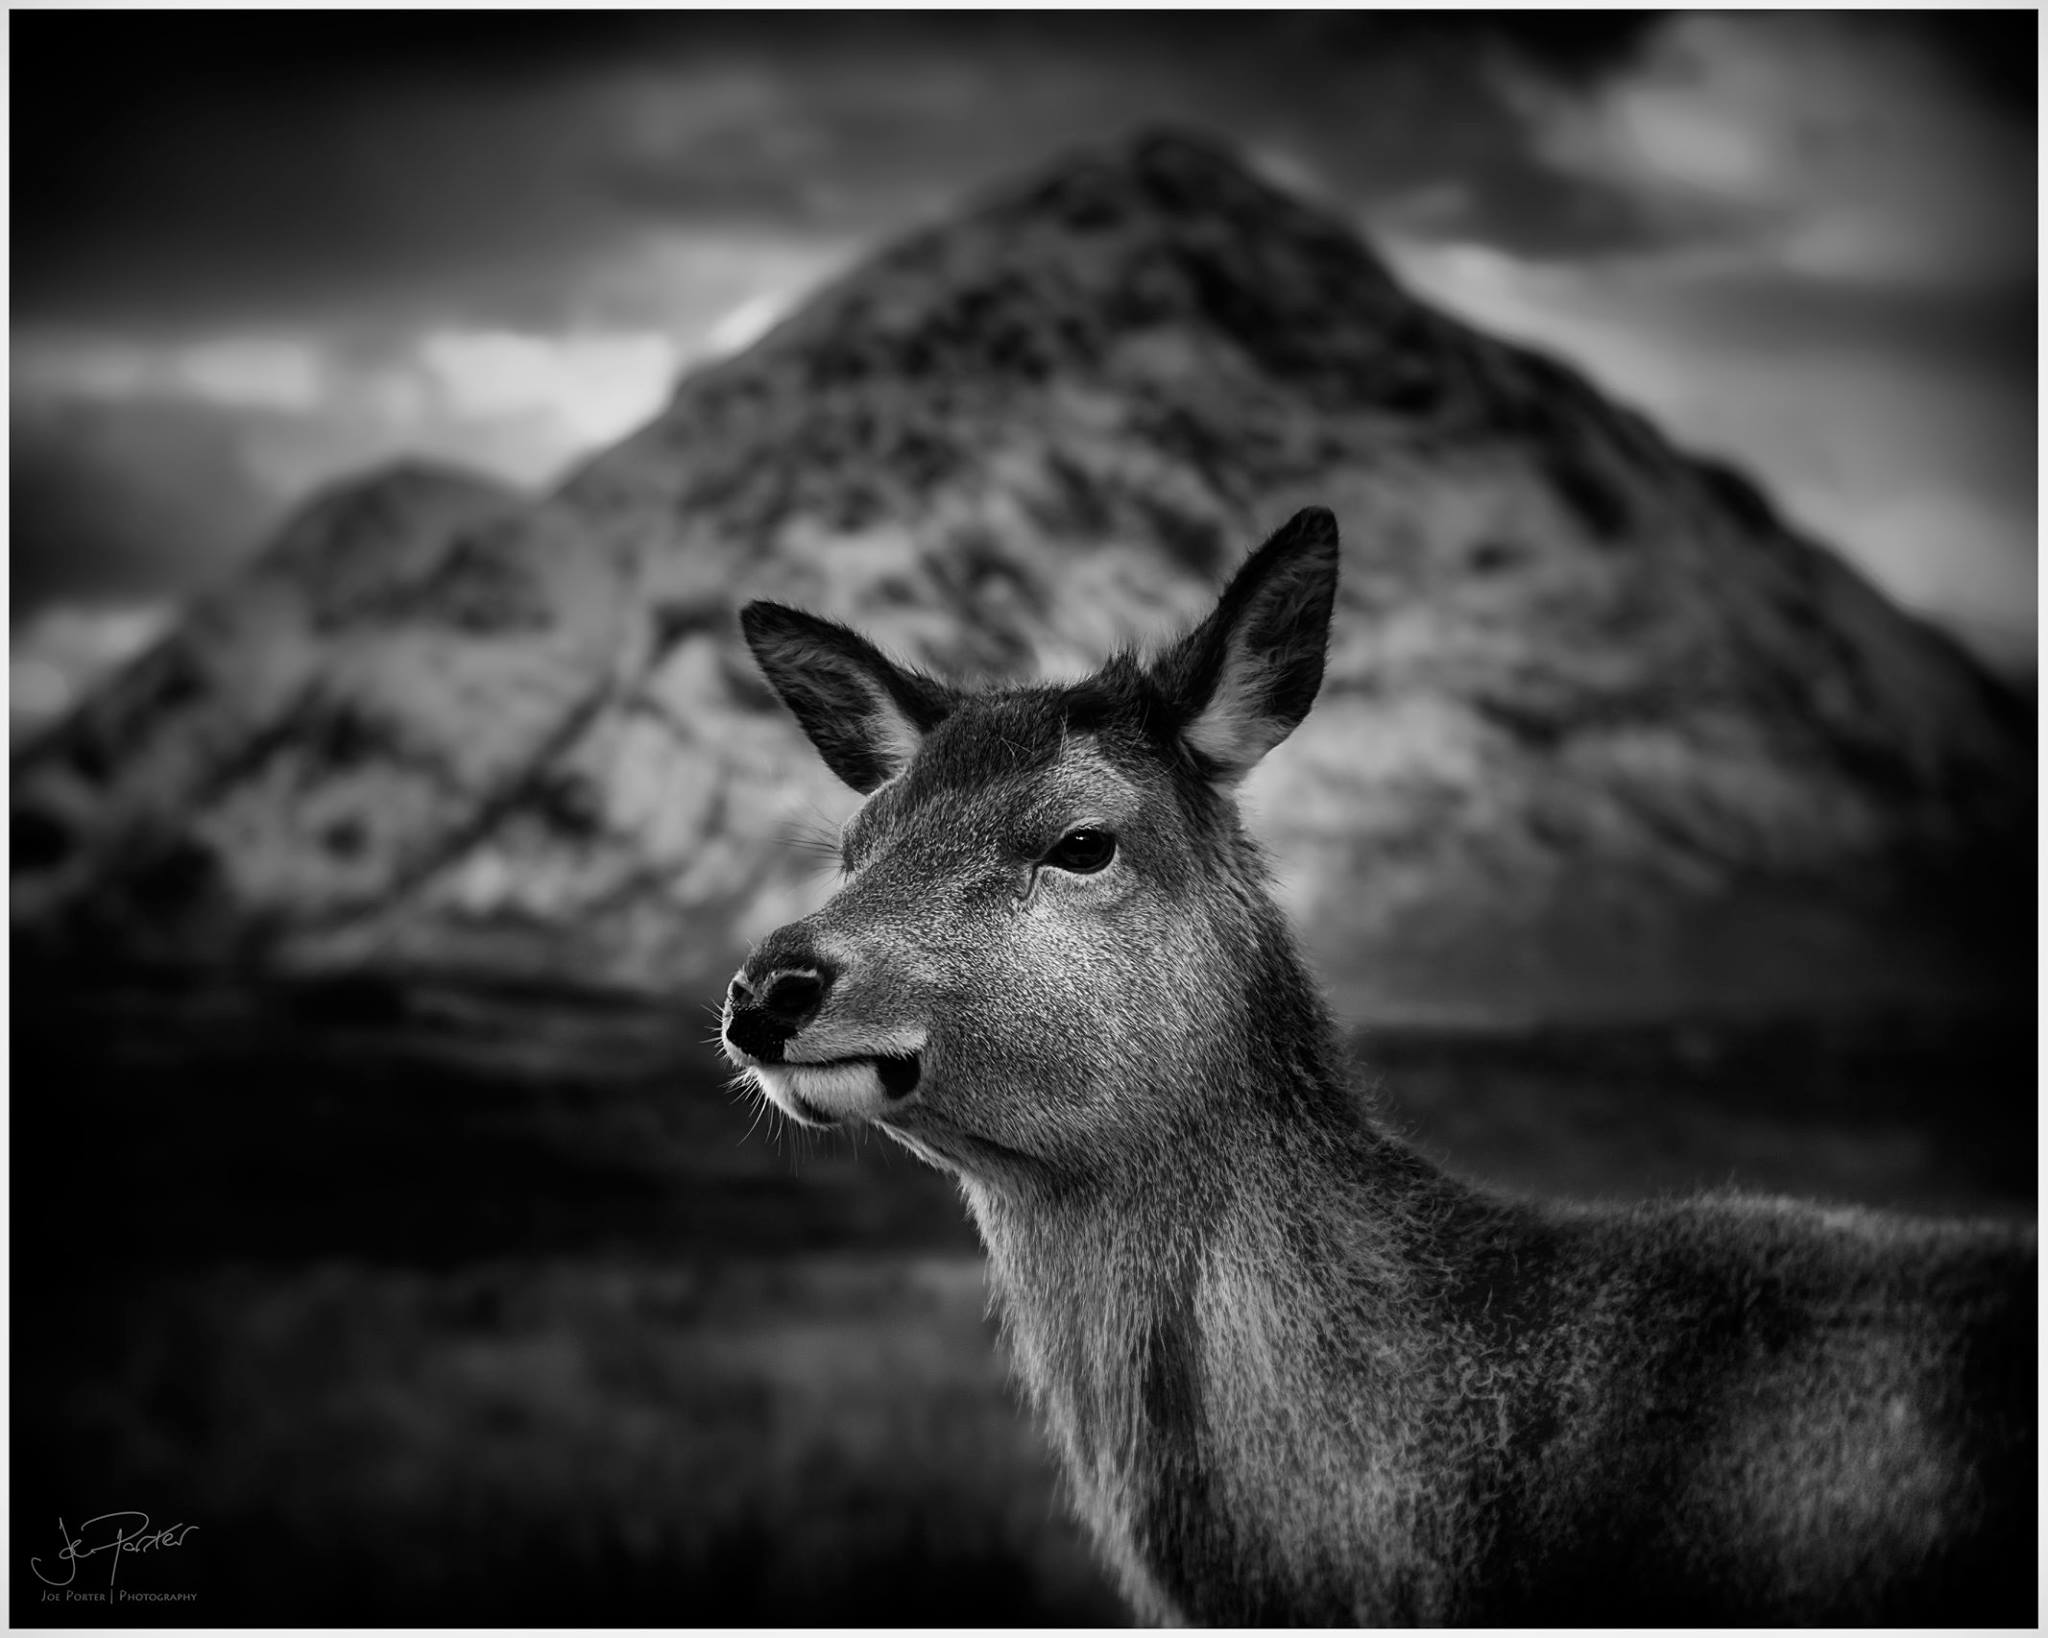 deer in front of mountain black and white photo Lensbaby's featured photos